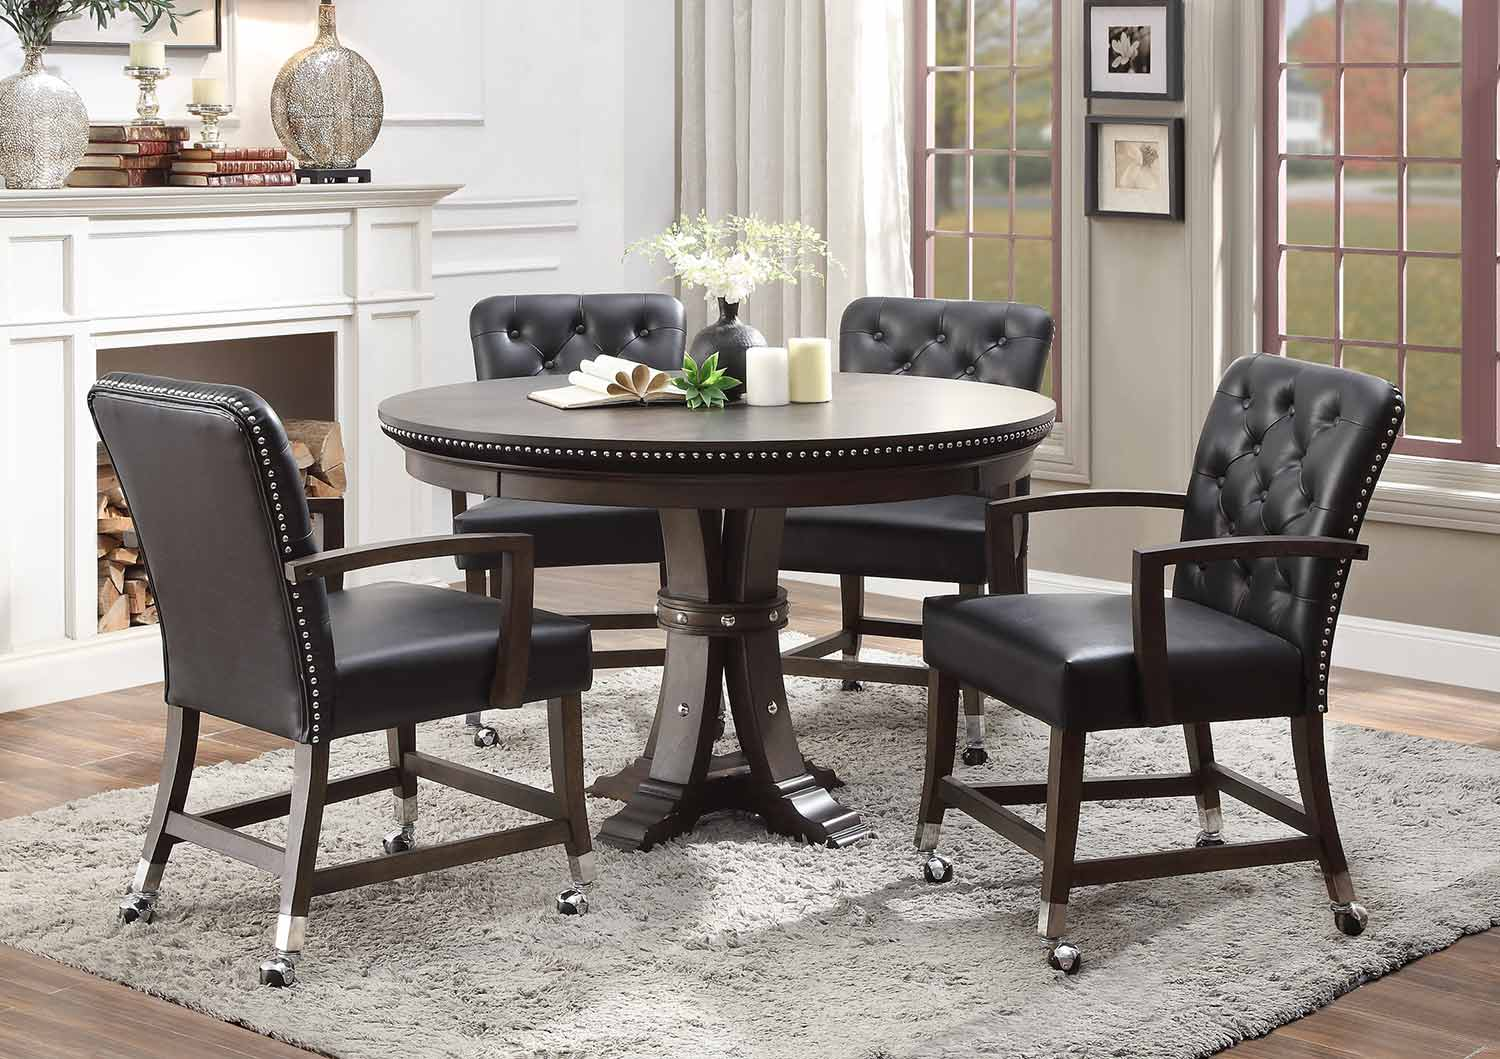 Homelegance Ante Round Dining/Game Table Set - Dark Brown